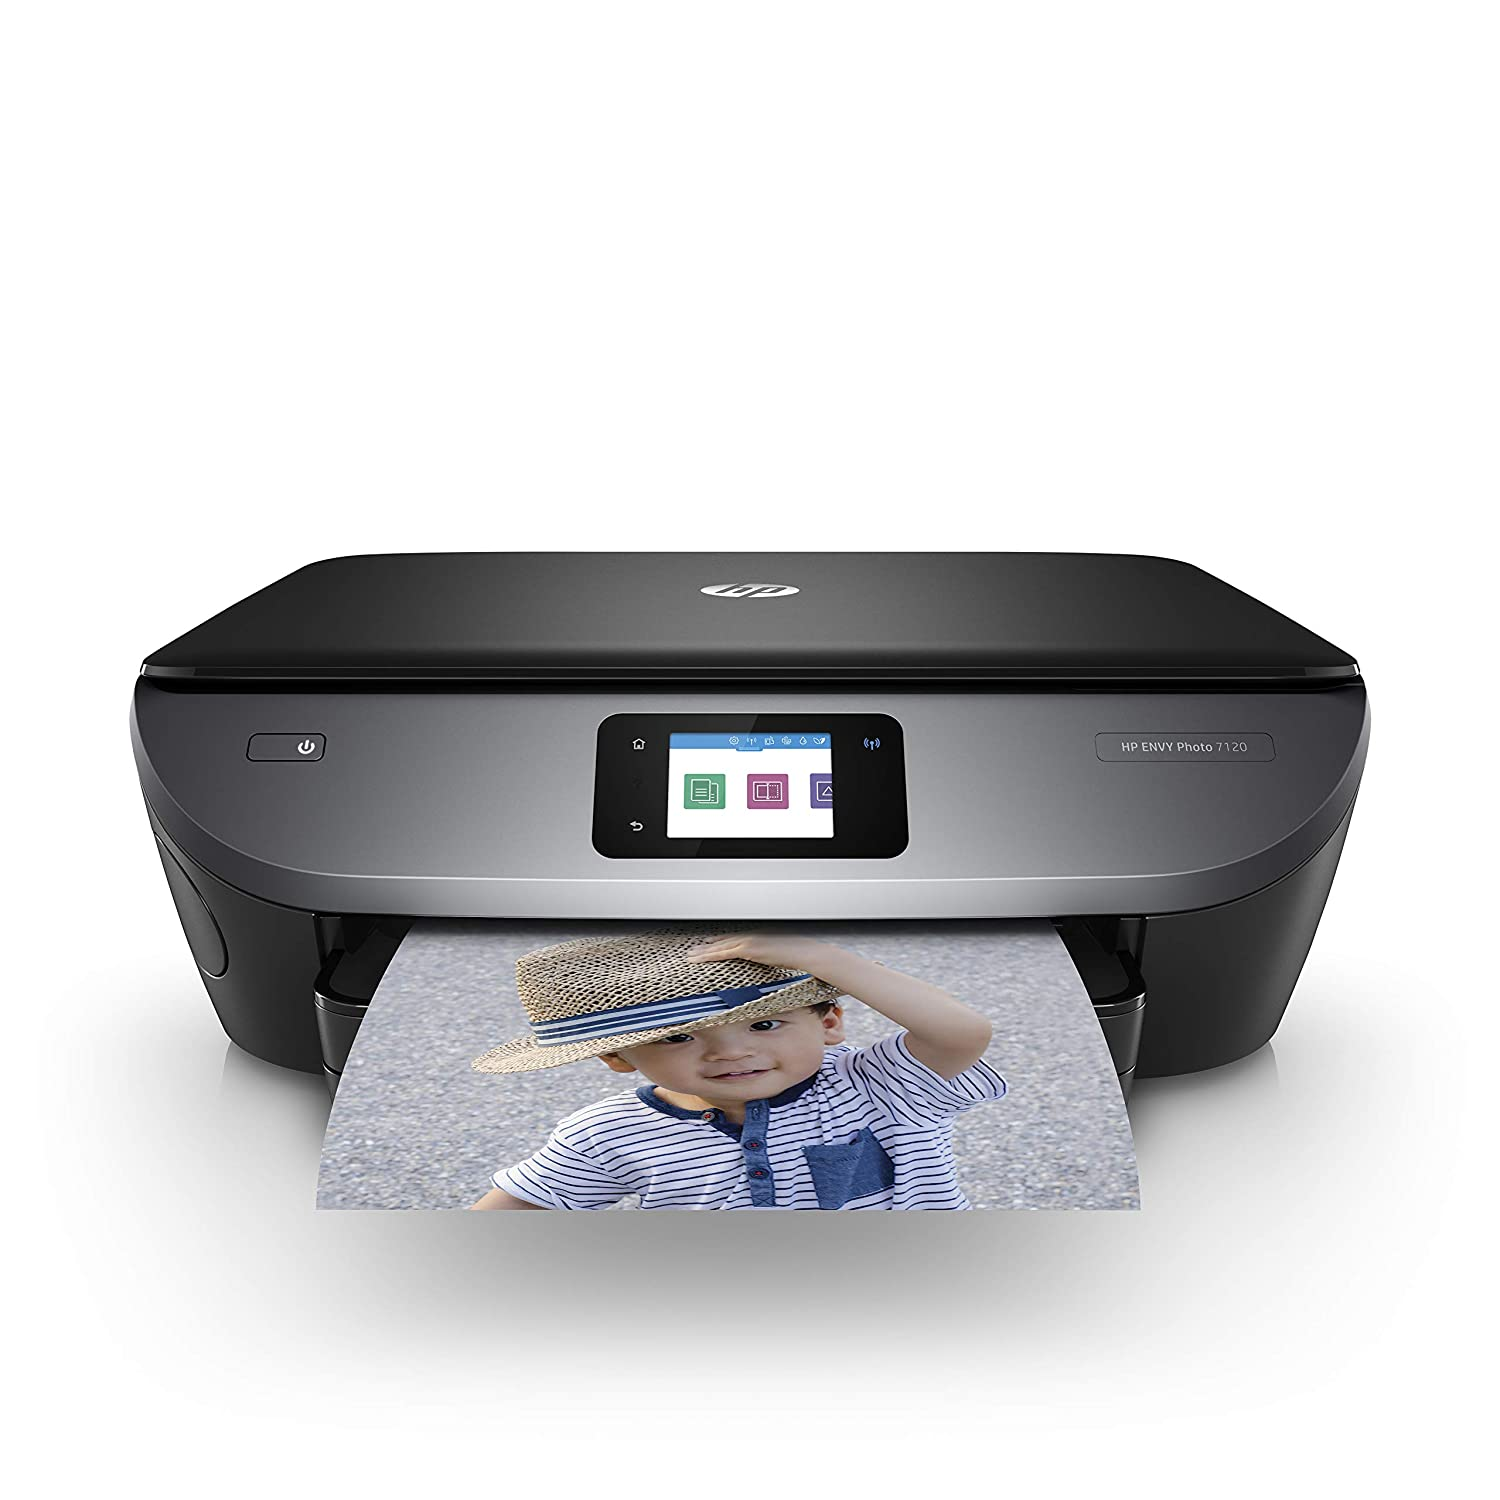 HP Envy Photo 7120 All in One Photo Printer with Wireless Printing, Instant  Ink Ready (Z3M37A)